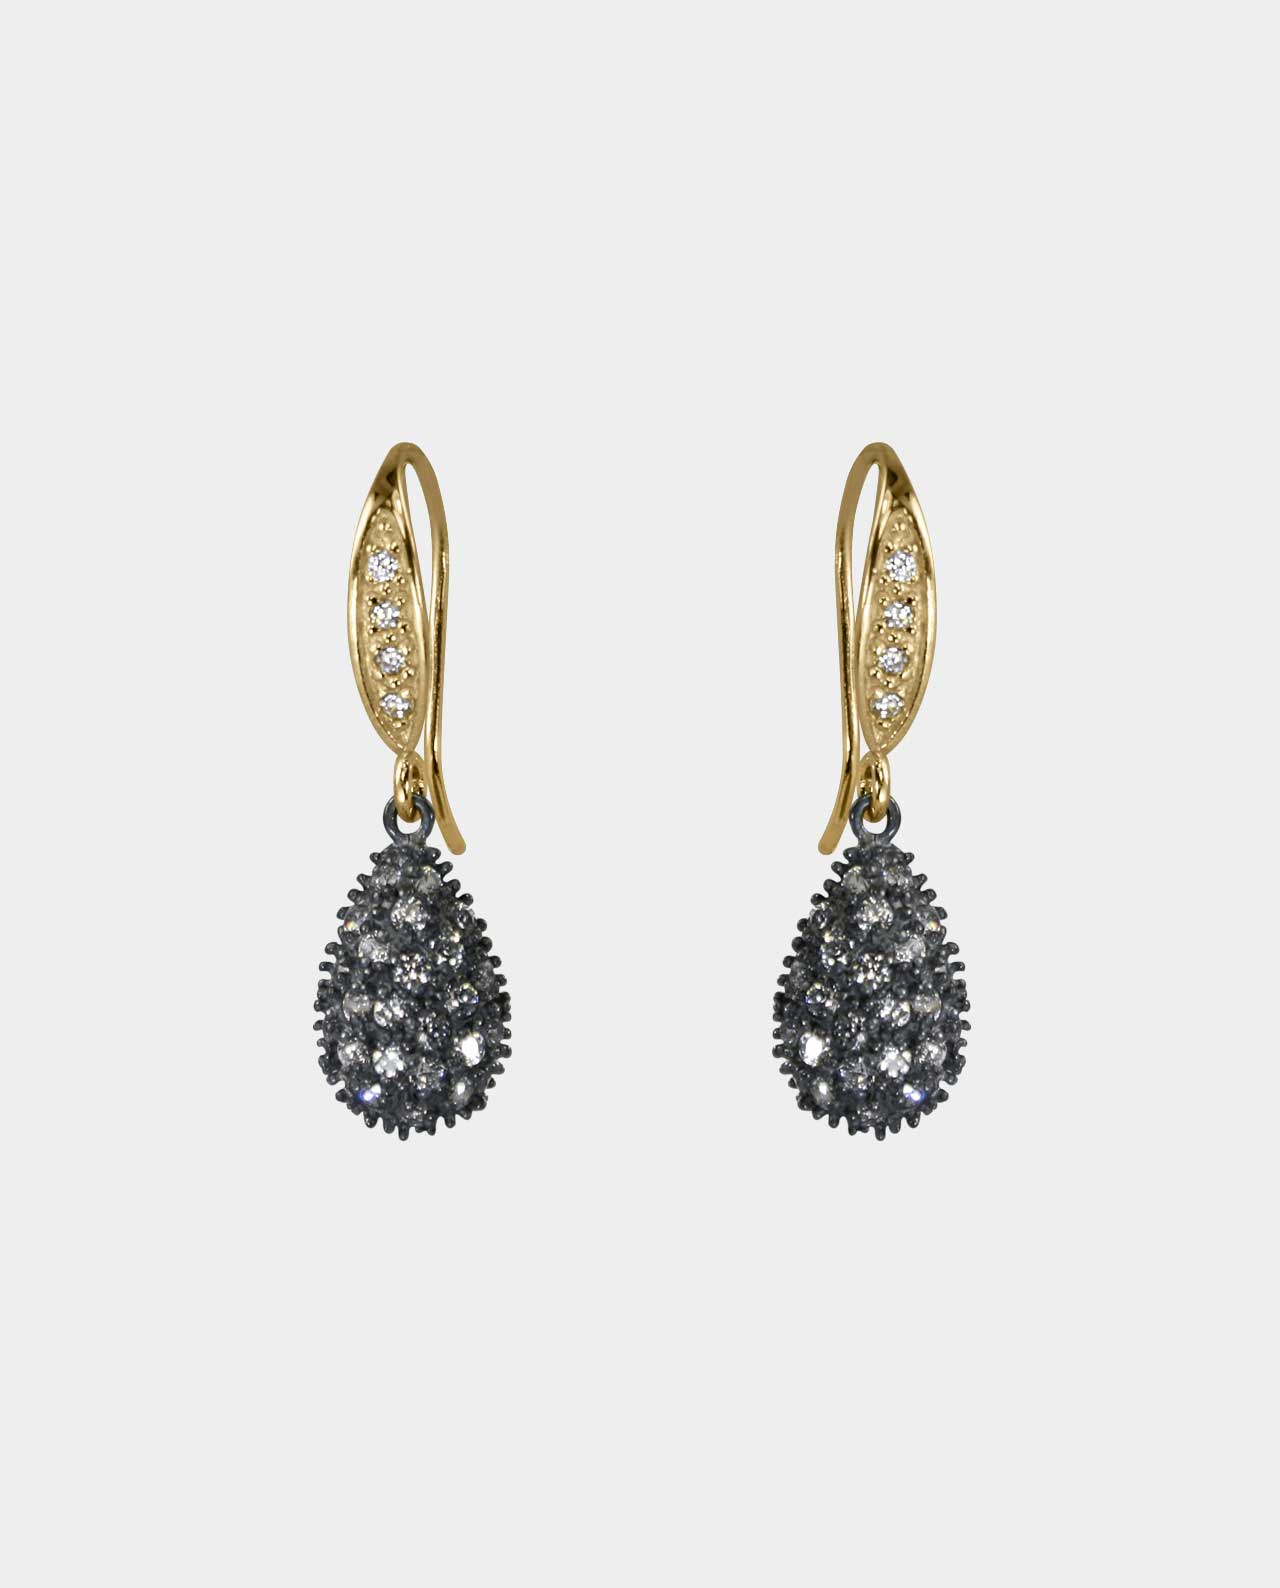 Feminine earrings with zirconia and rustic oxidized sterling silver that shines in light in the form of a classic piece of jewelry processed by hand giving the earrings an organic expression with real gold and gemstones